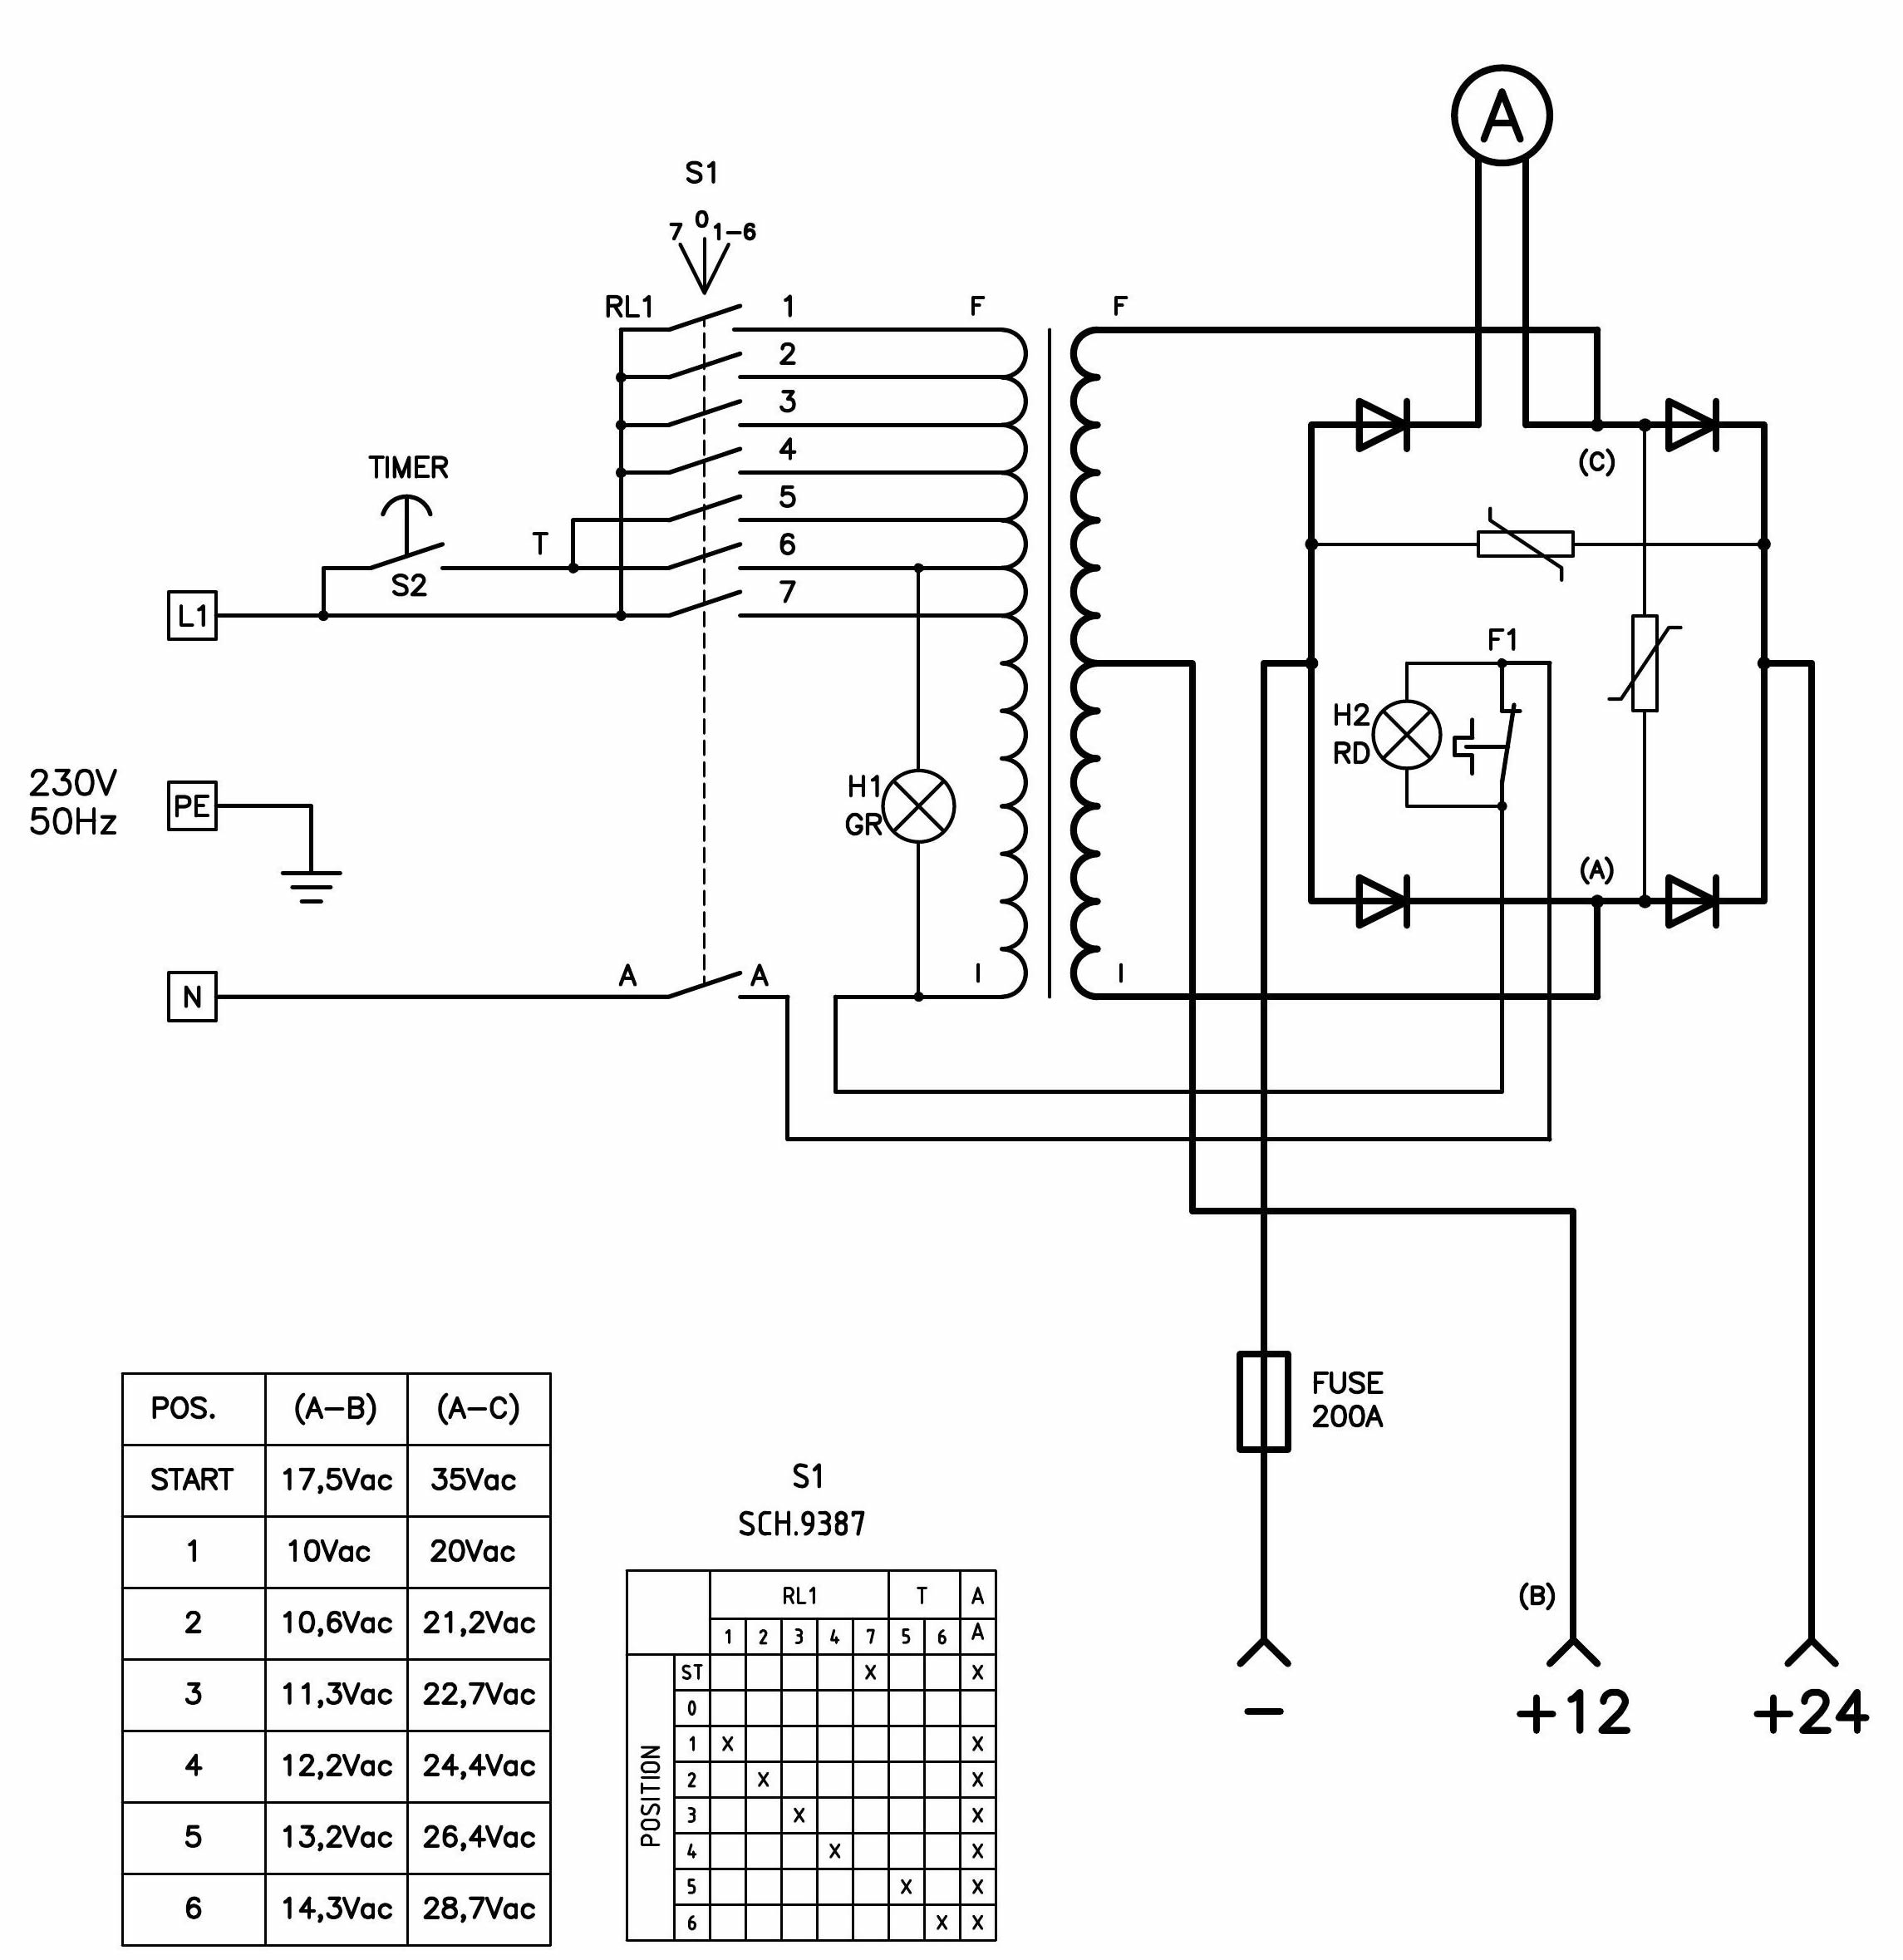 Acdelco Cs130 Wiring Diagram. Diagrams. Auto Fuse Box Diagram